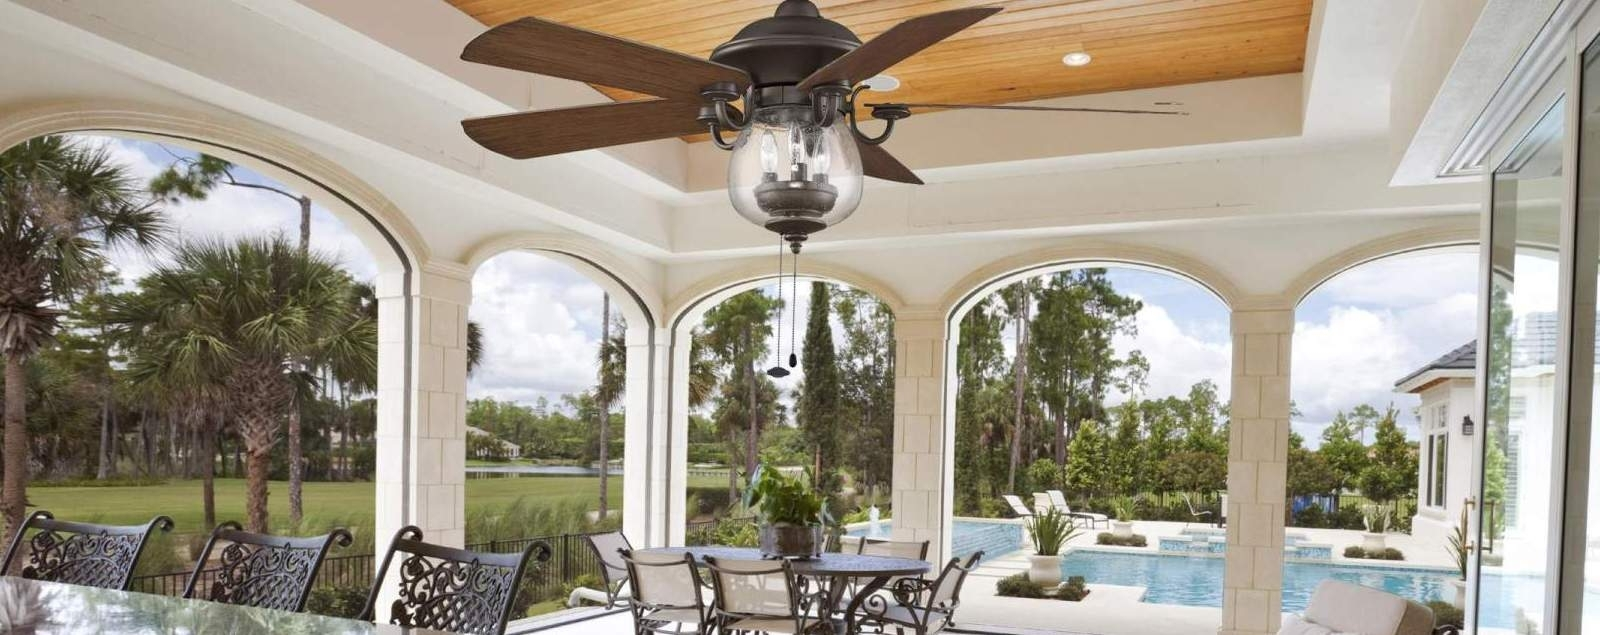 Favorite Outdoor Ceiling Fans For Wet Areas Intended For Outdoor Ceiling Fans – Shop Wet, Dry, And Damp Rated Outdoor Fans (View 7 of 20)